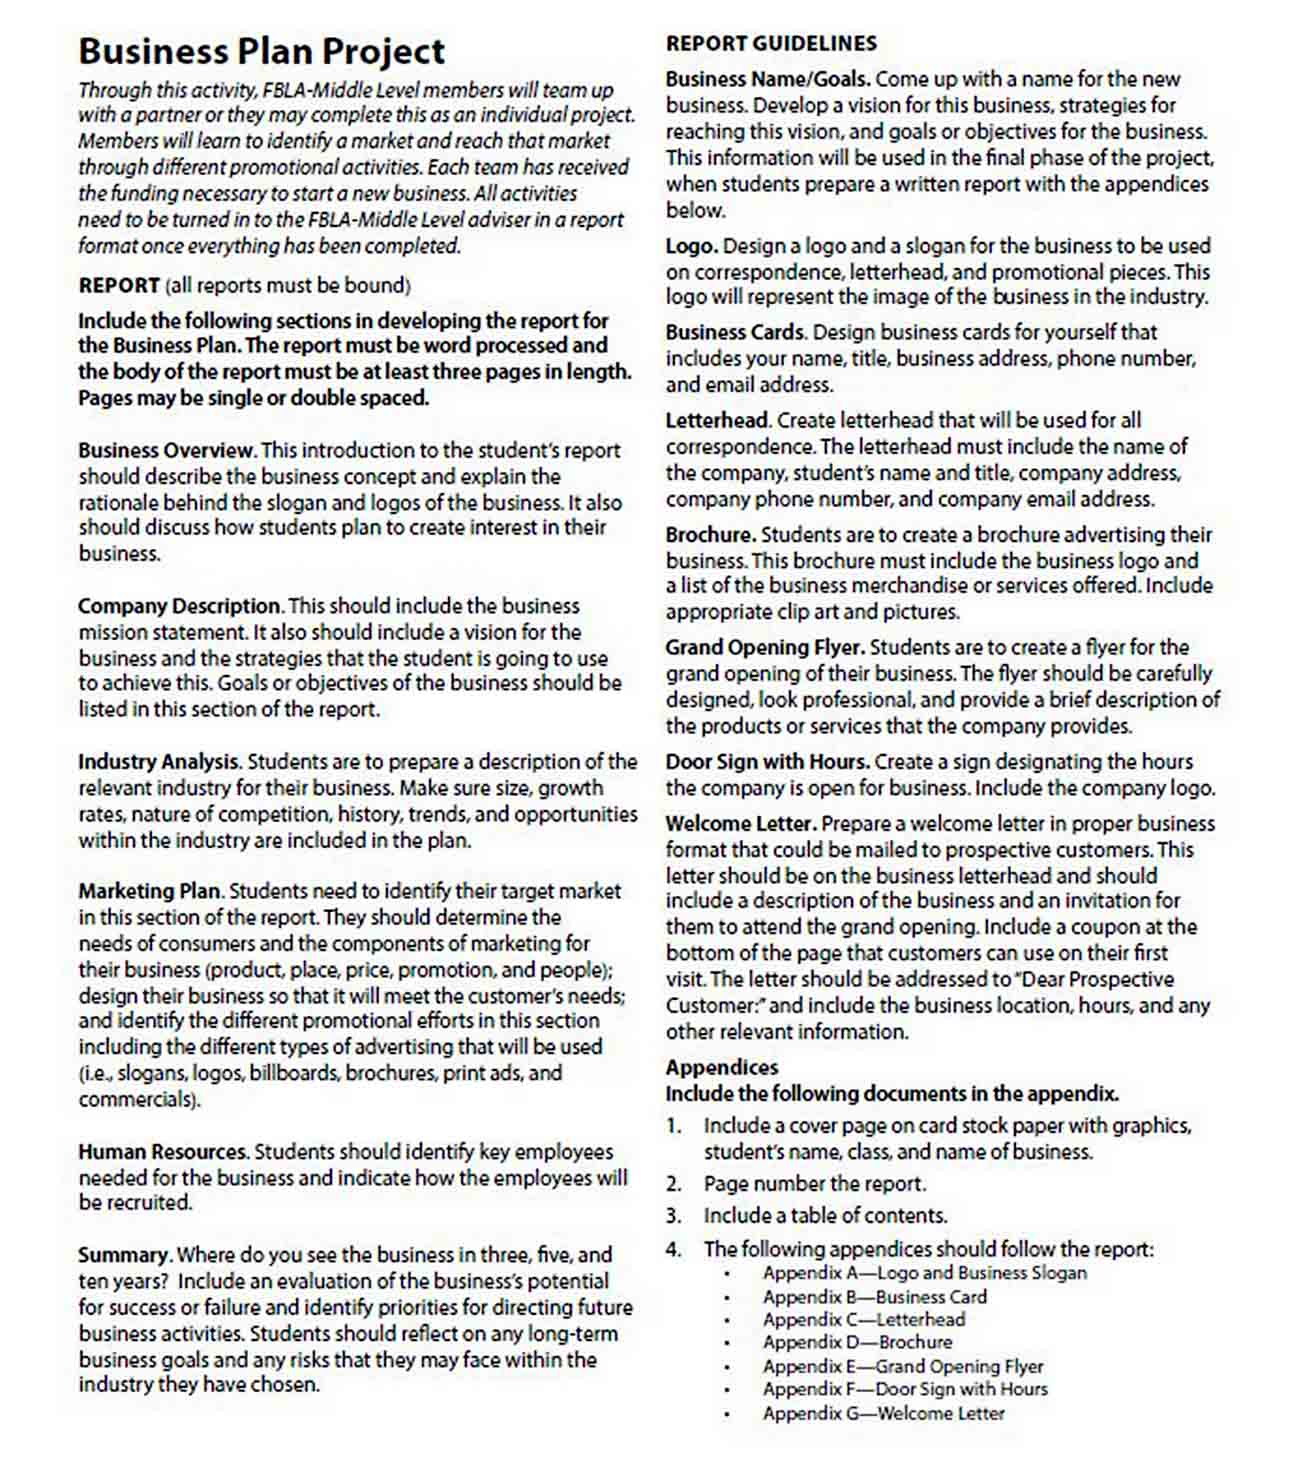 Business Plan Project Report Template sample